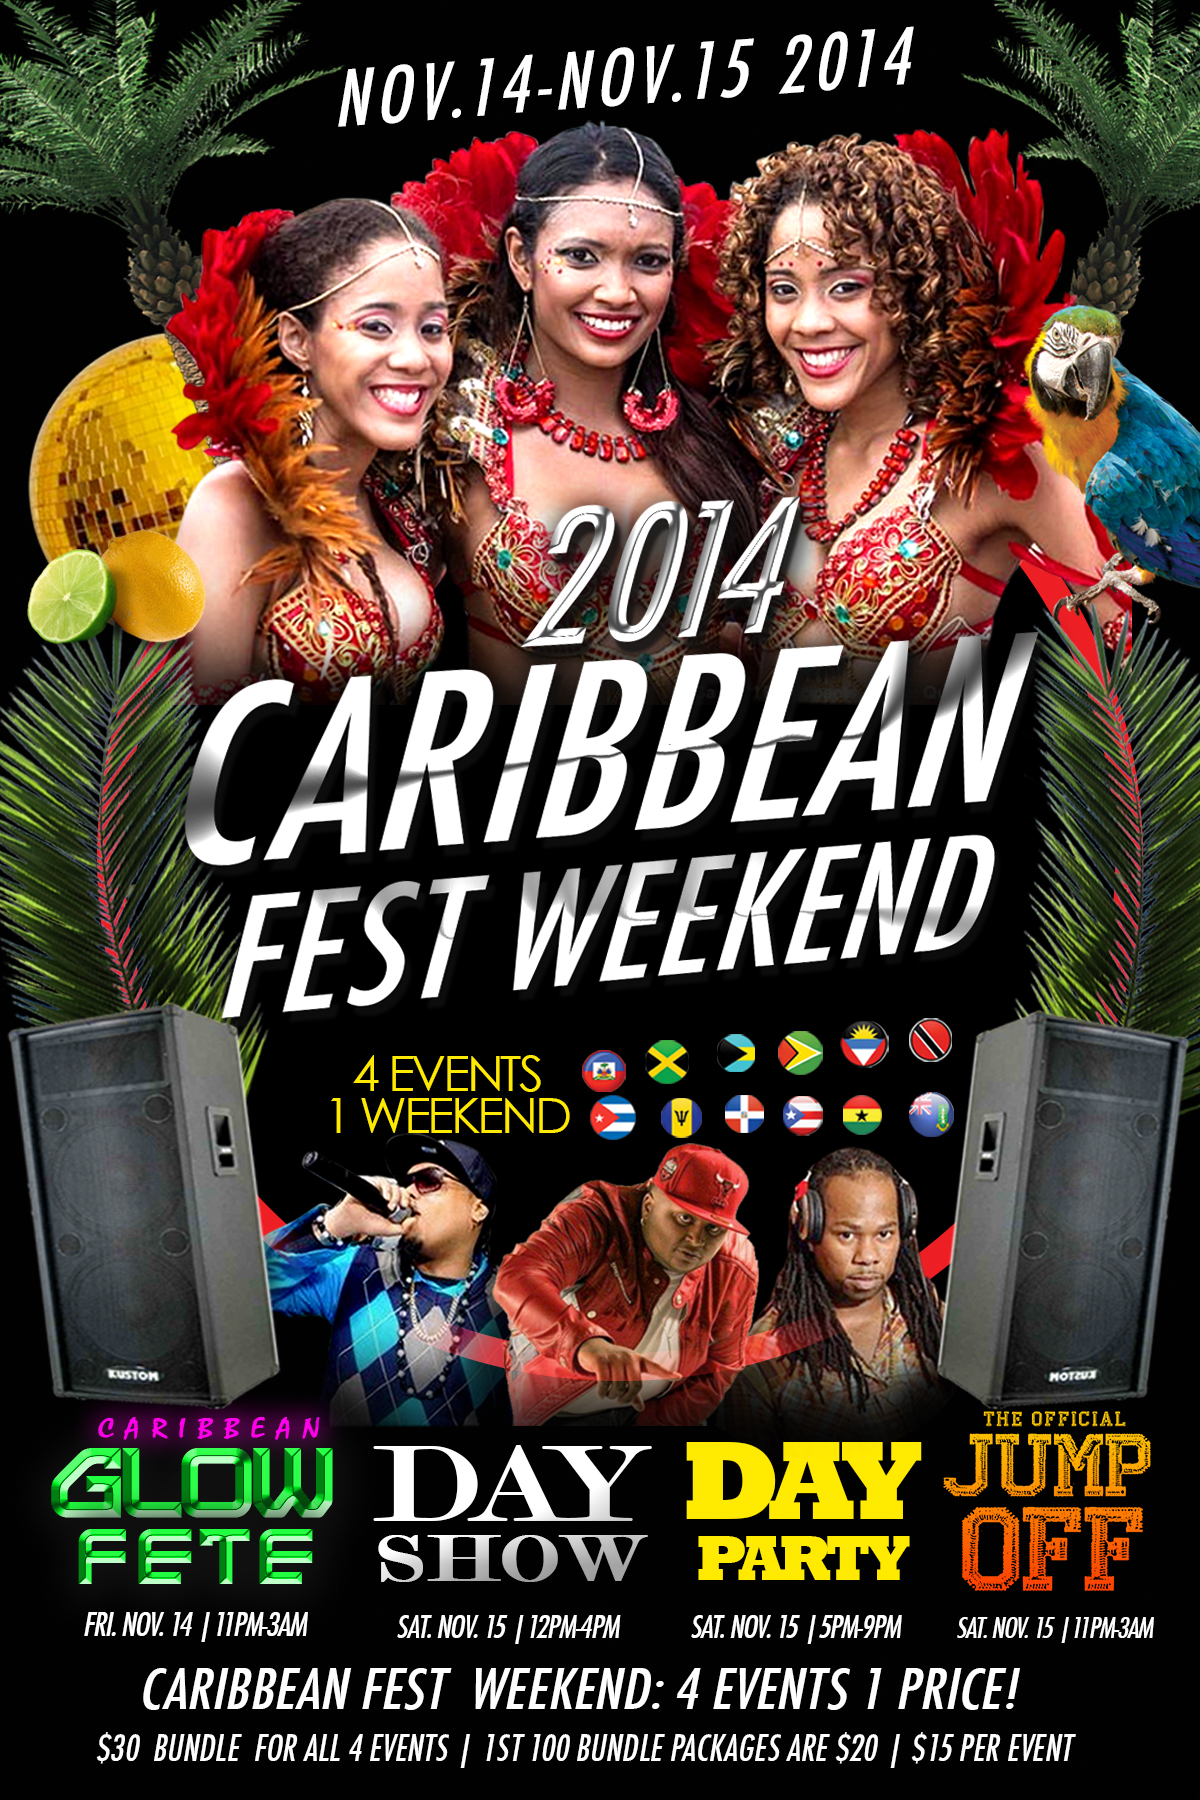 2014 Caribbean Fest Weekend, Binghamton NY | Empire Life